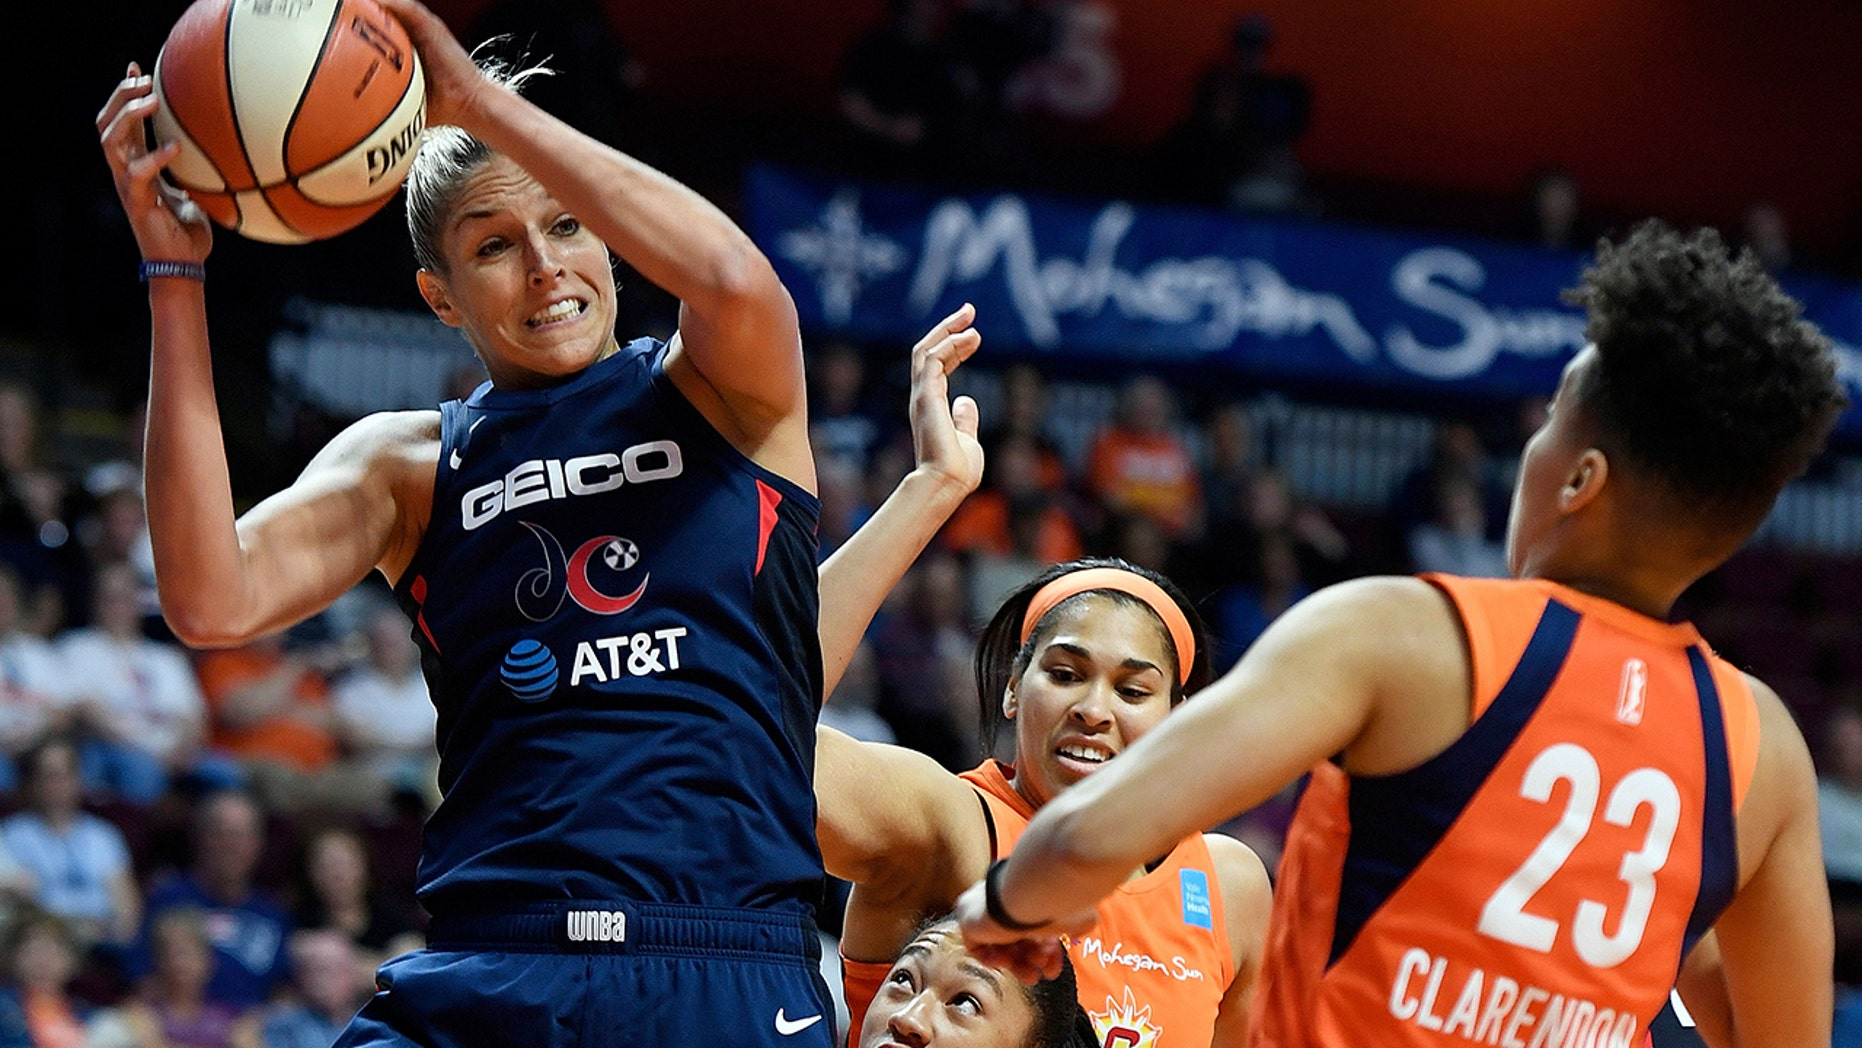 FILE - In this June 11, 2019, file photo, Washington Mystics forward Elena Delle Donne pulls down a rebound next to Connecticut Sun guard Layshia Clarendon during a WNBA basketball game in Uncasville, Conn. Thibault's squad has been using a stellar defensive effort to win five in a row and now sit atop The Associated Press WNBA power poll. The Mystics are second in the league allowing just 73.2 points a game. (Sean D. Elliot/The Day via AP, File)